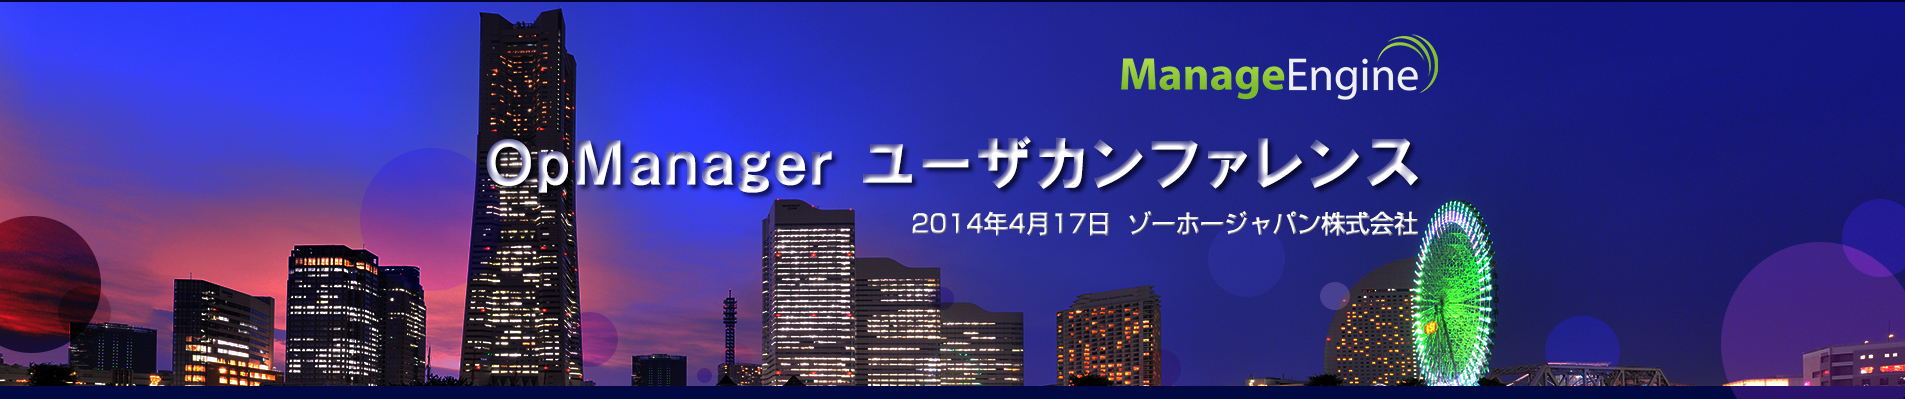 OpManager_Userconference